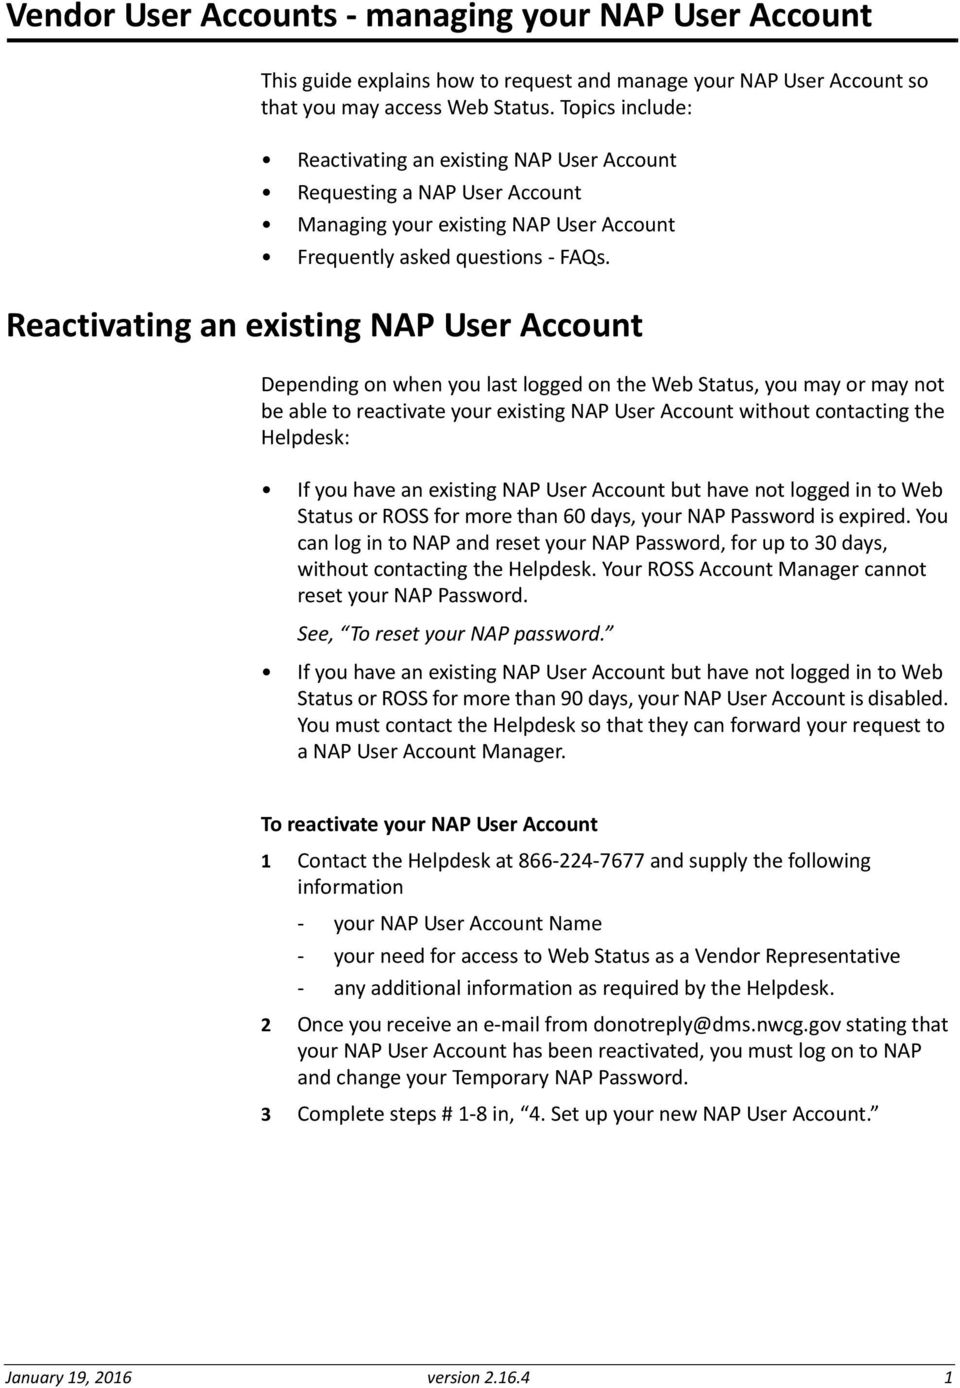 Reactivating an existing NAP User Account Depending on when you last logged on the Web Status, you may or may not be able to reactivate your existing NAP User Account without contacting the Helpdesk: